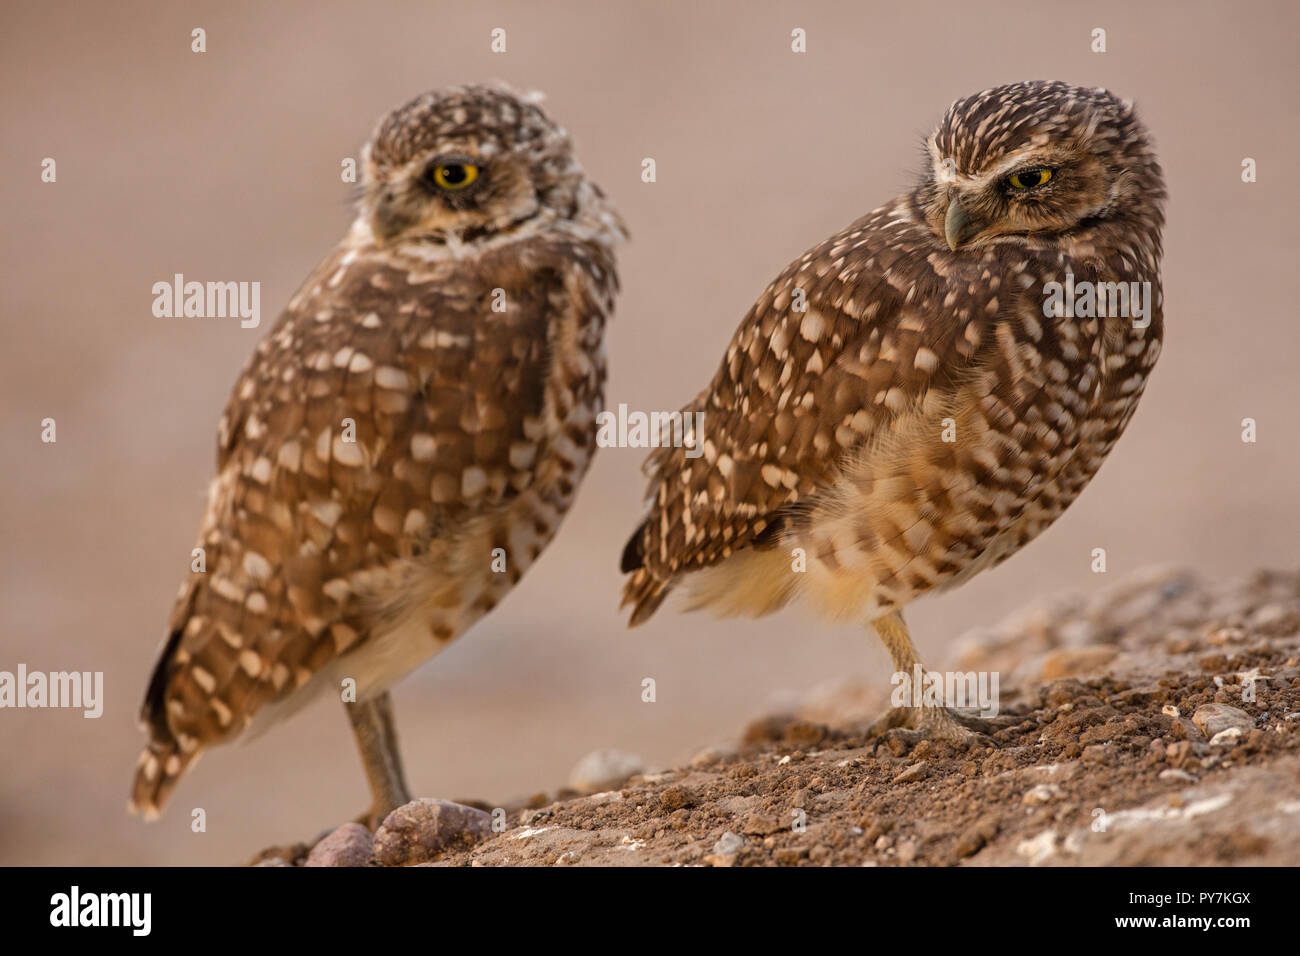 burrowing owls, (Athene cunicularia), Arizona - Stock Image